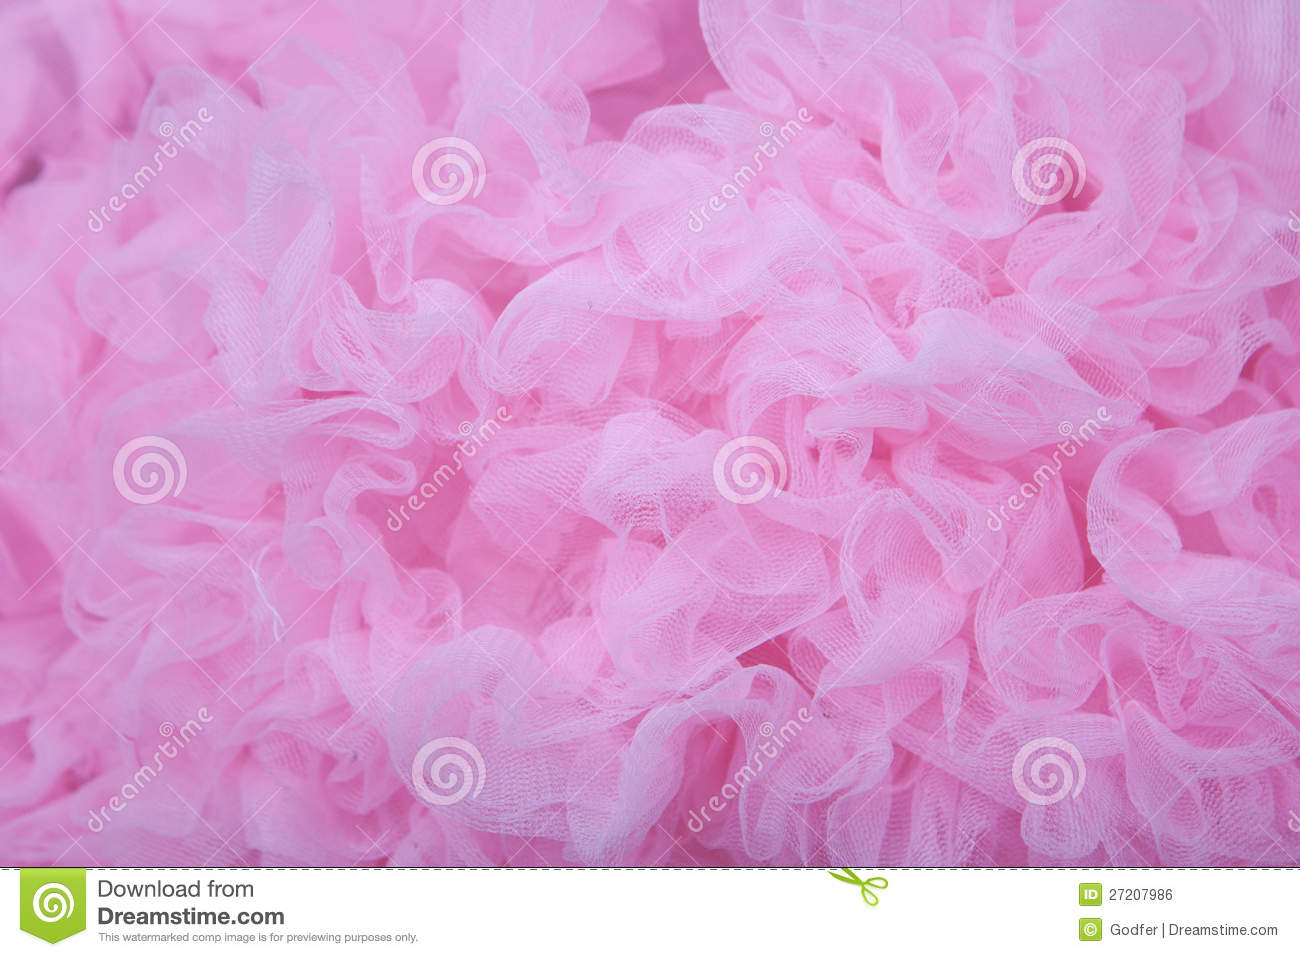 Girly Background Royalty Free Stock Photo: Pink Textured Background Royalty Free Stock Image